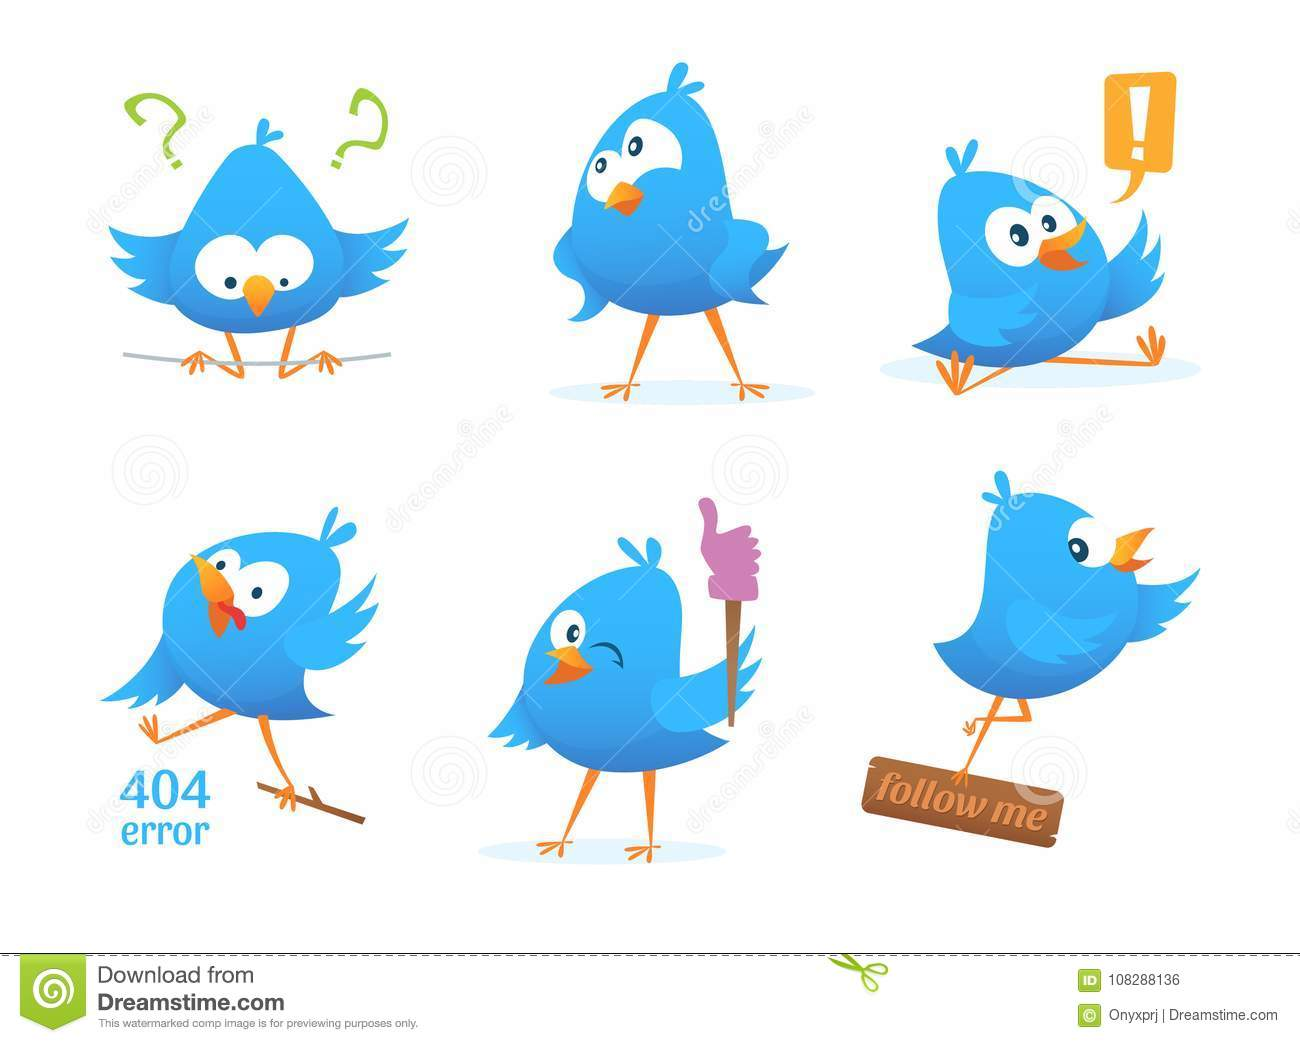 Funny Characters Of Blue Birds In Action Poses Stock Vector